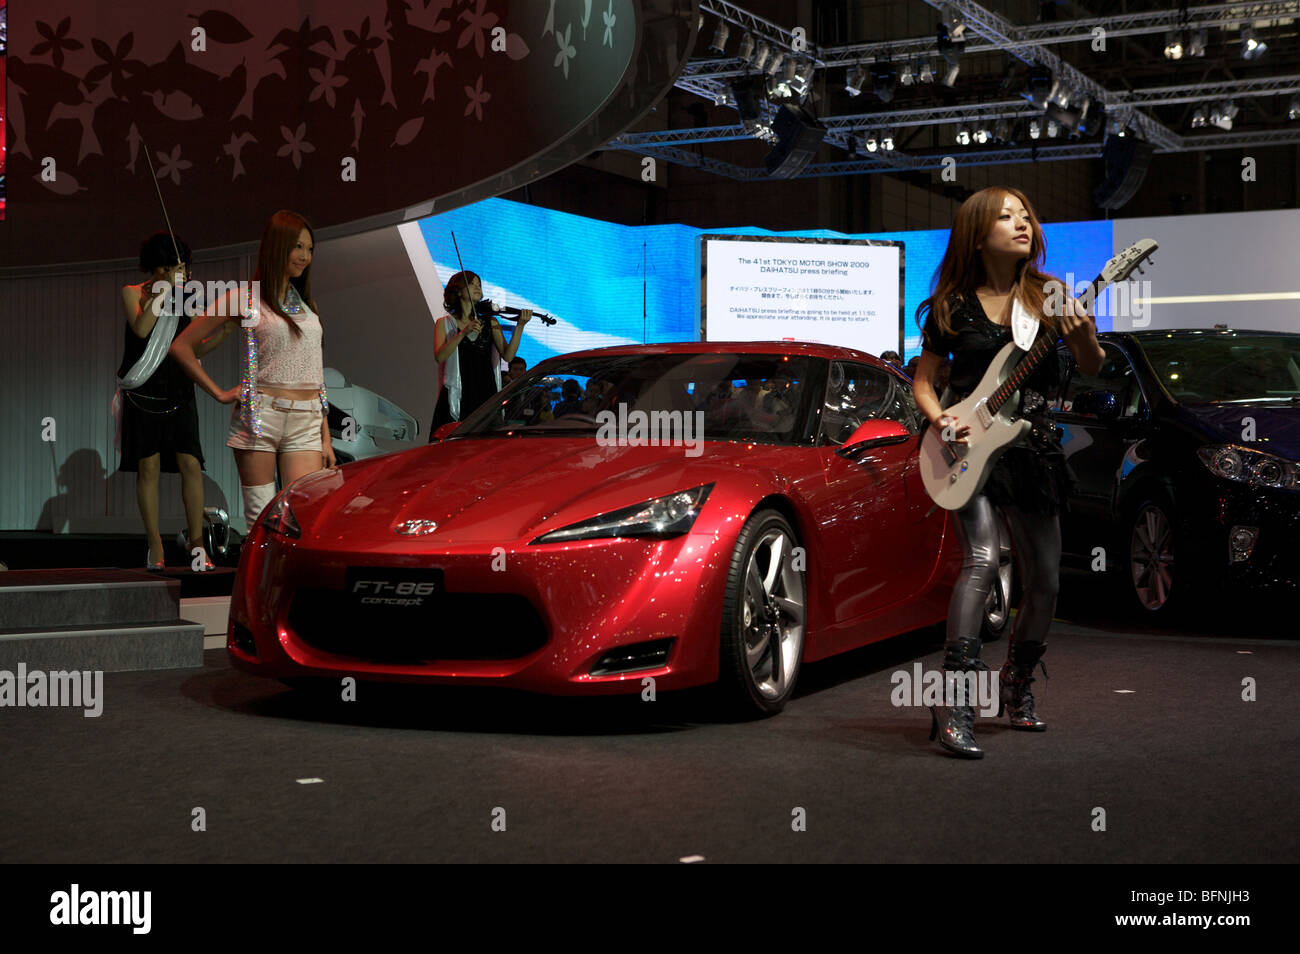 Toyota concept car FT-86 sports coupe displayed at the 2009 Tokyo Motorshow. - Stock Image